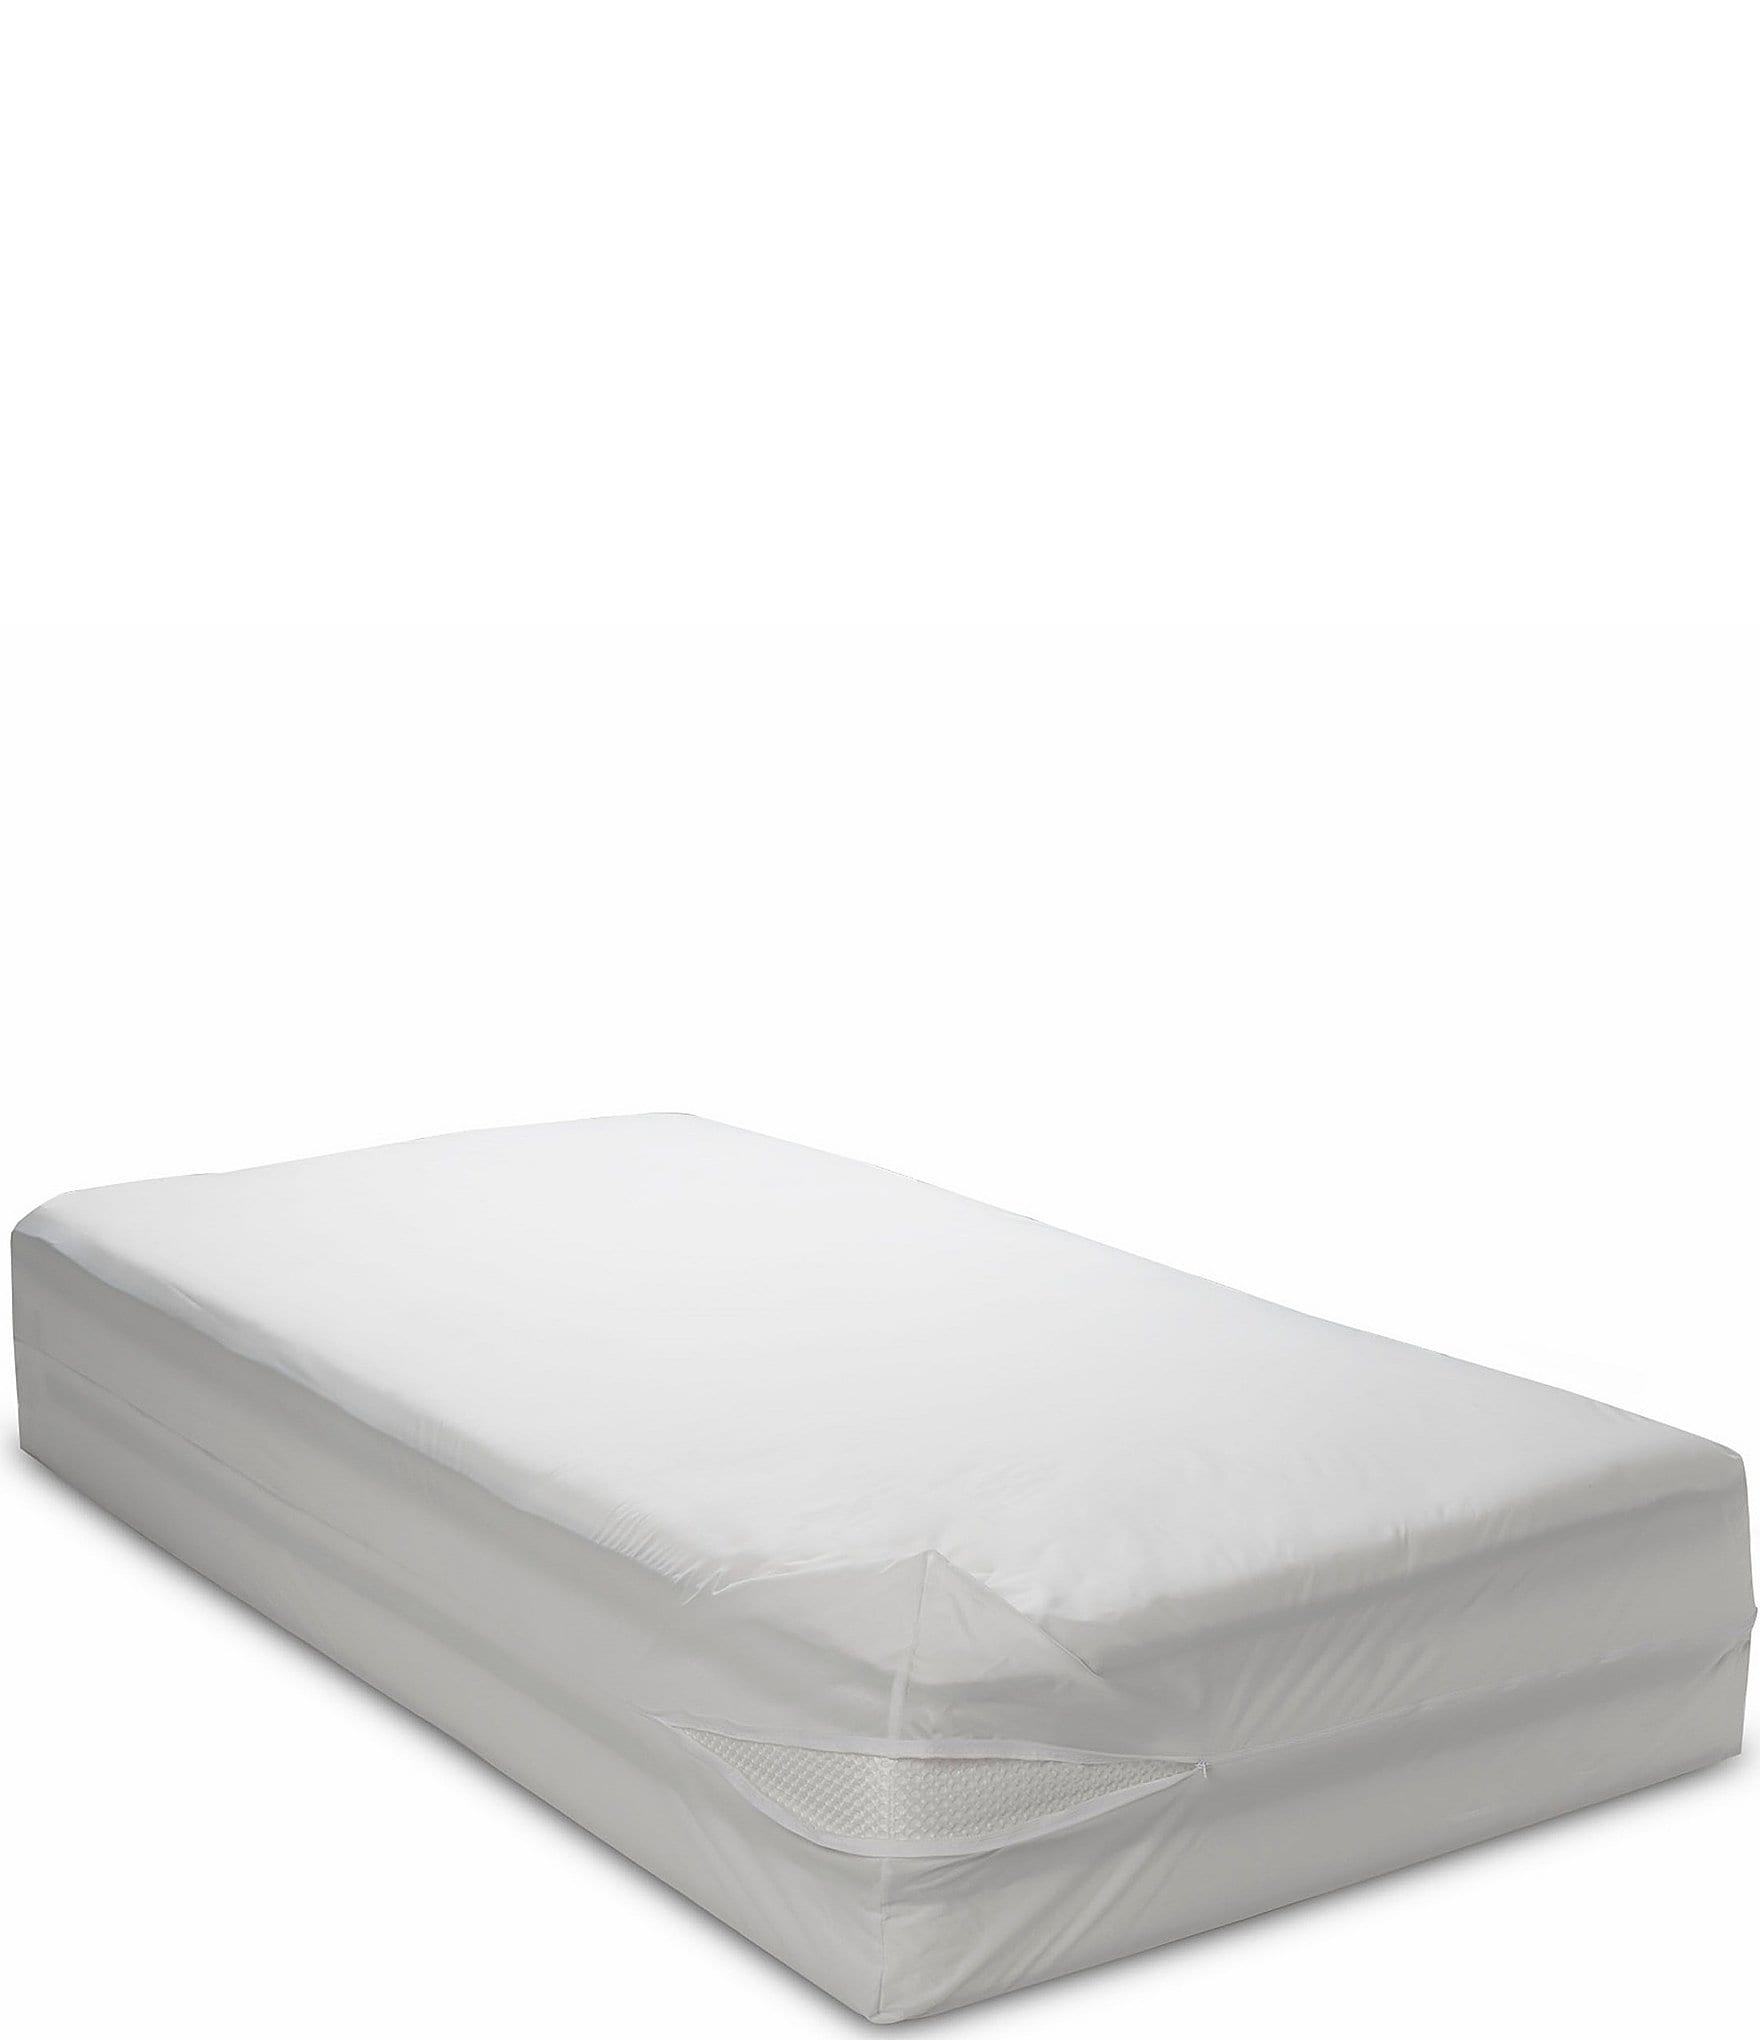 Bed Bug Mattress Cover.Bedcare All Cotton Allergy And Bed Bug Proof 9 Mattress Cover